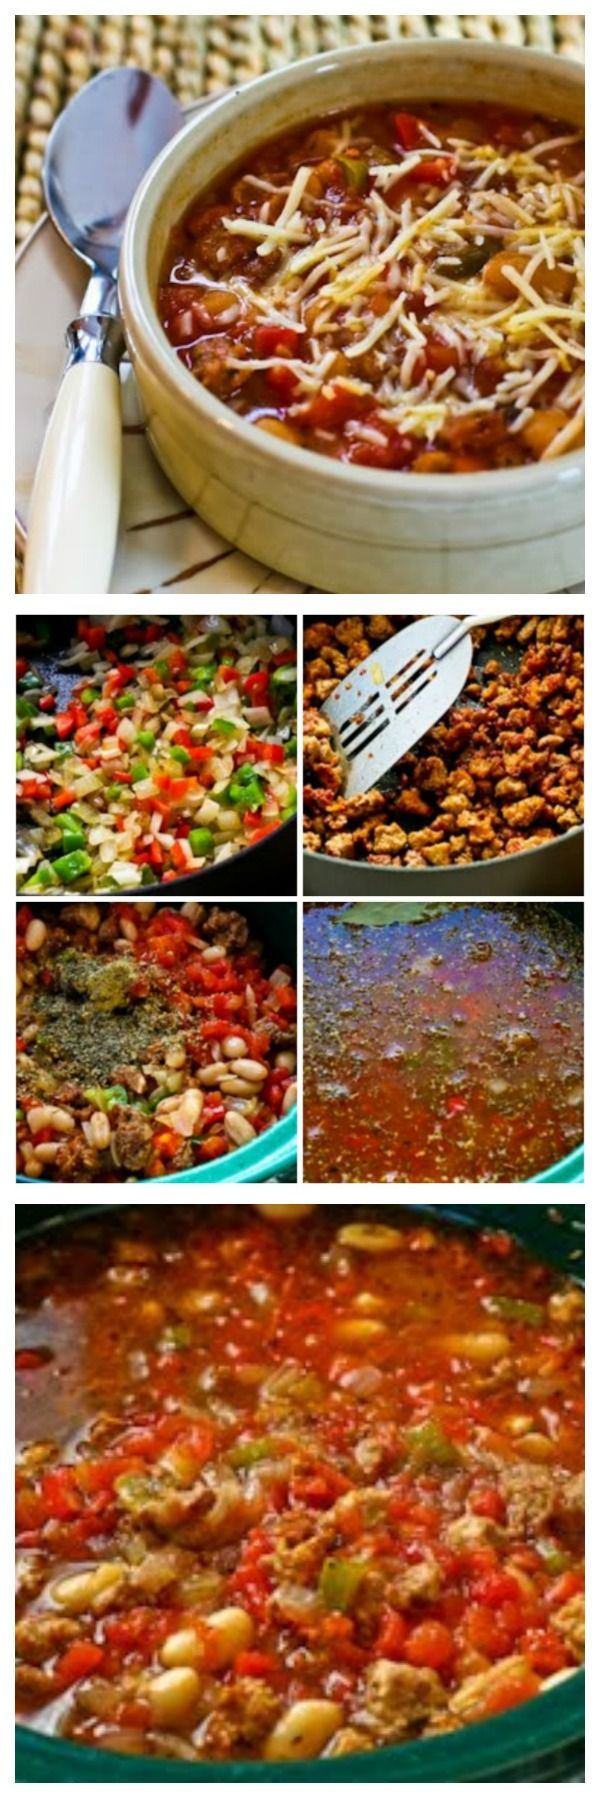 This CrockPot recipe for Sausage, Peppers, and Cannellini Bean Stew with Parmesan is one of my all-time favorite recipes for the slow cooker.  This is seriously delicious, and it freezes well.  [found on KalynsKitchen.com]